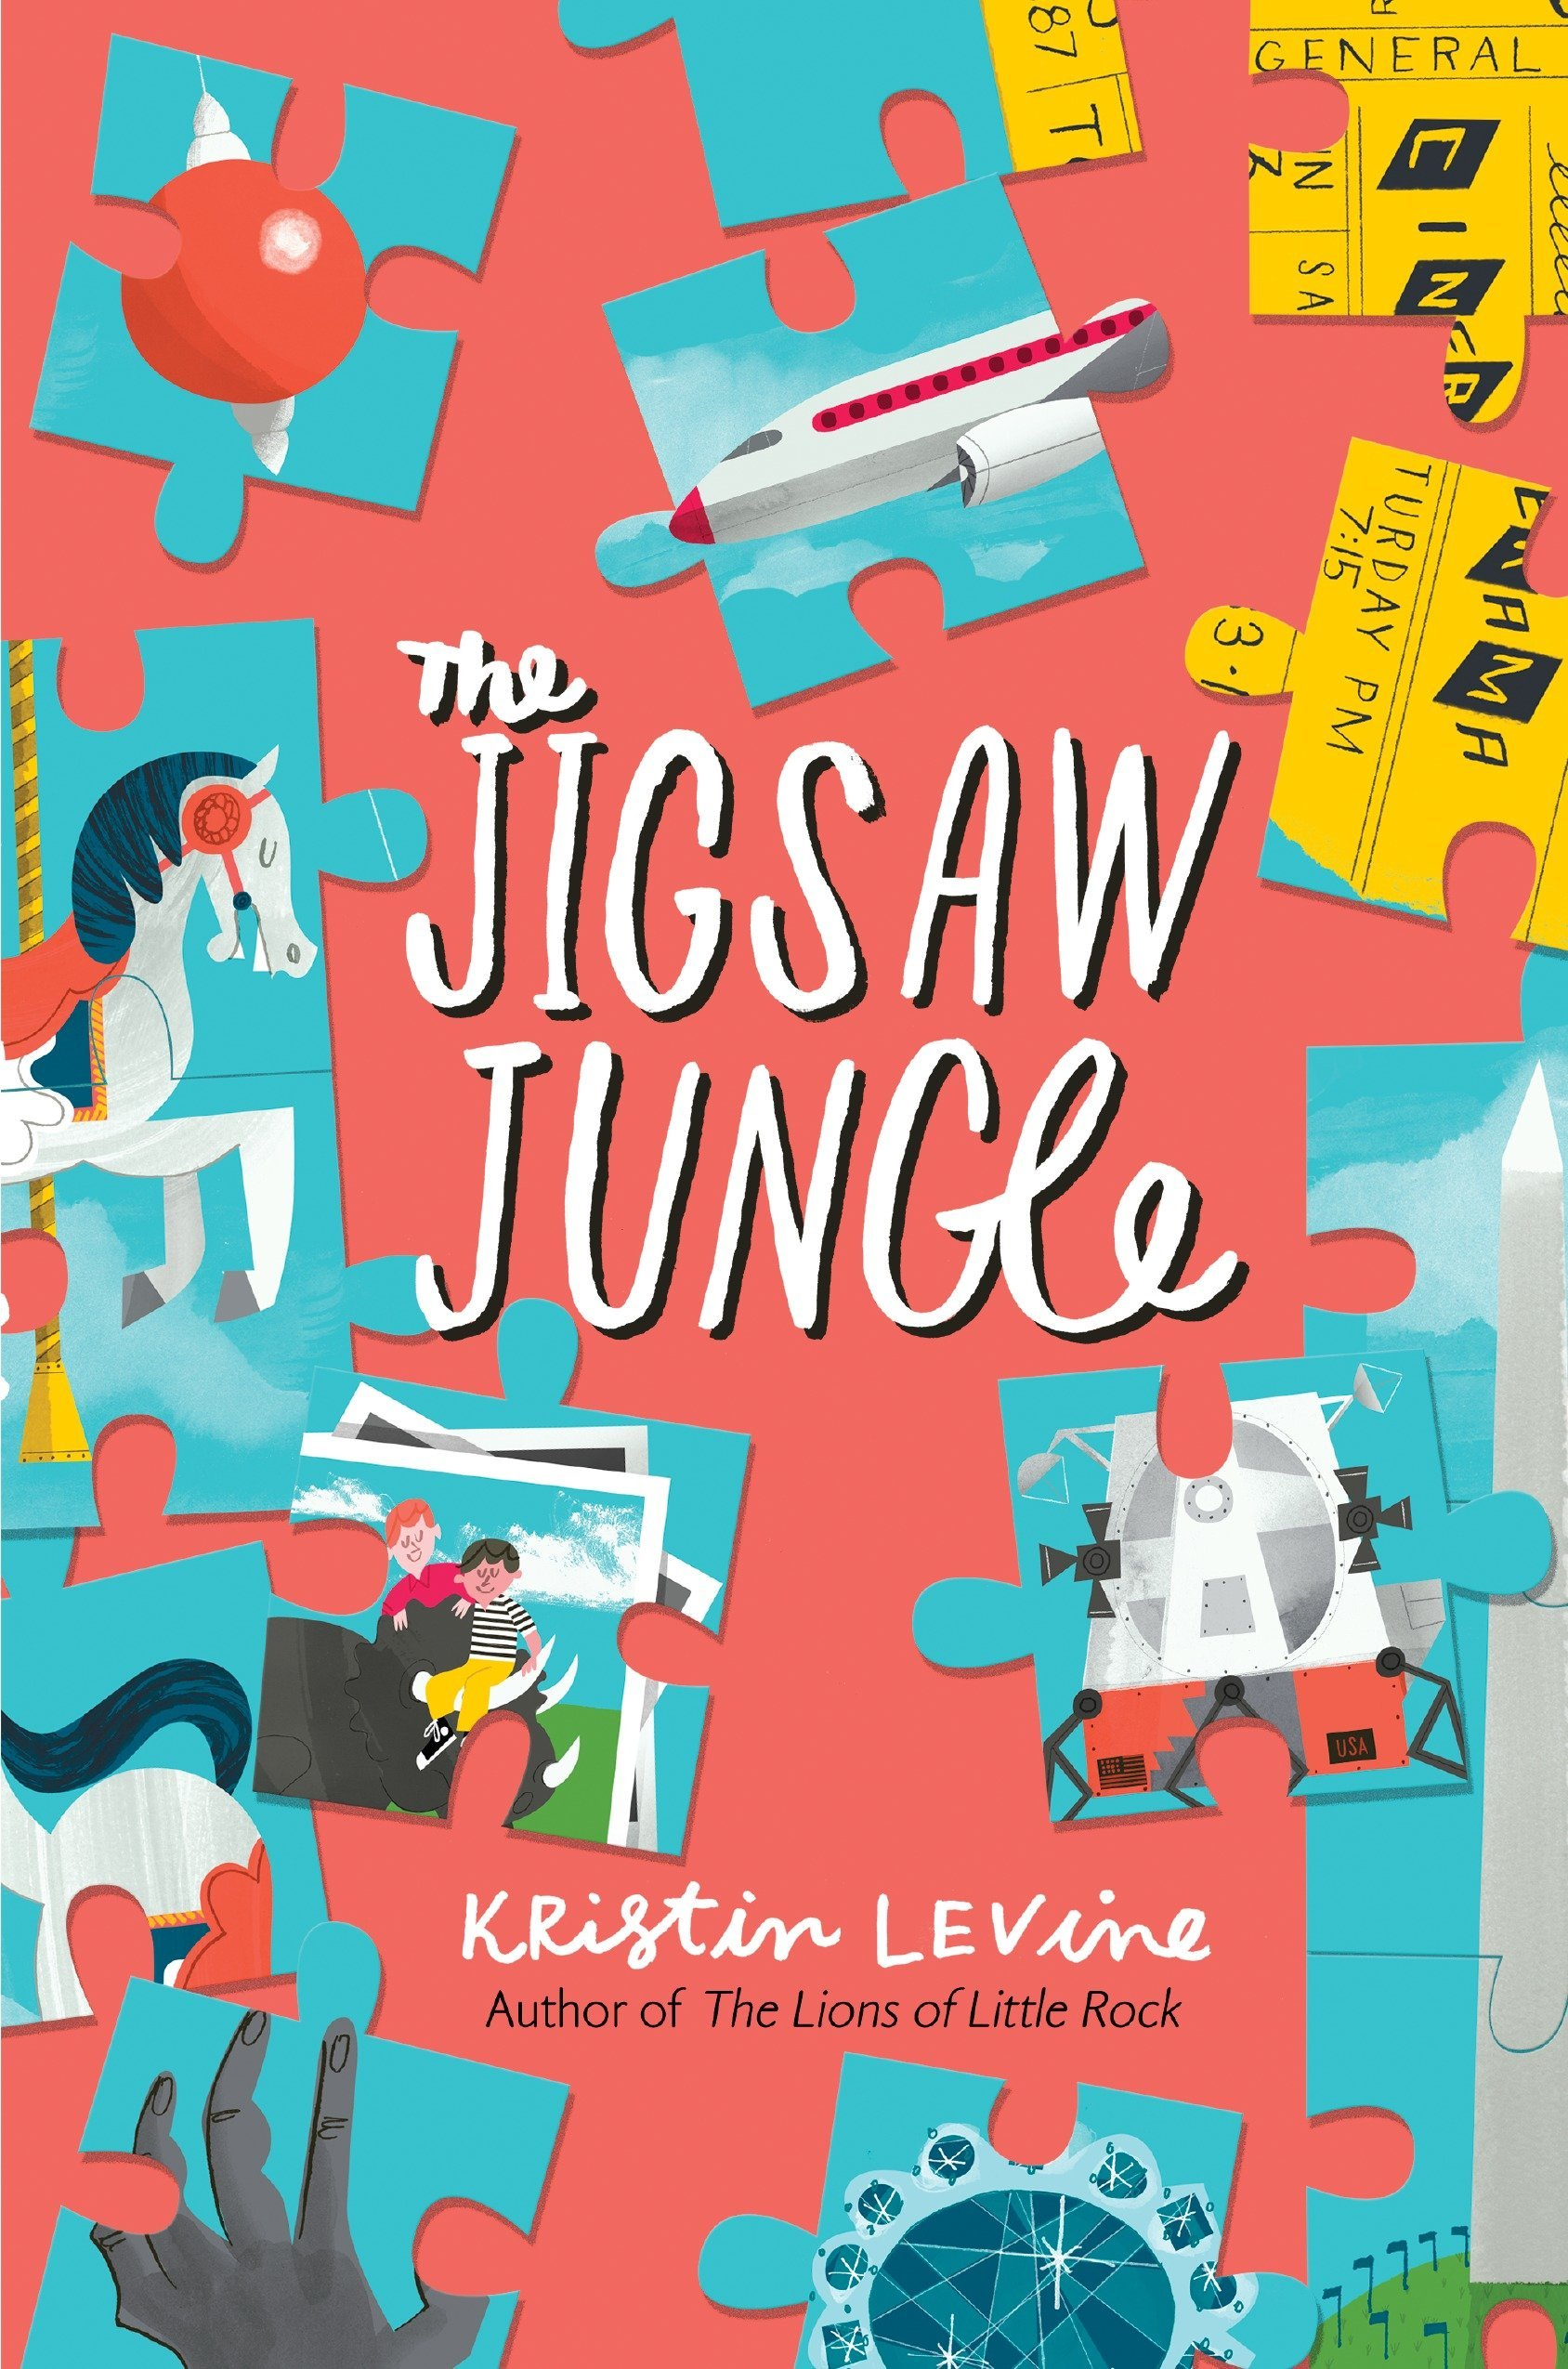 Image result for The Jigsaw Jungle by Kristin Levine.